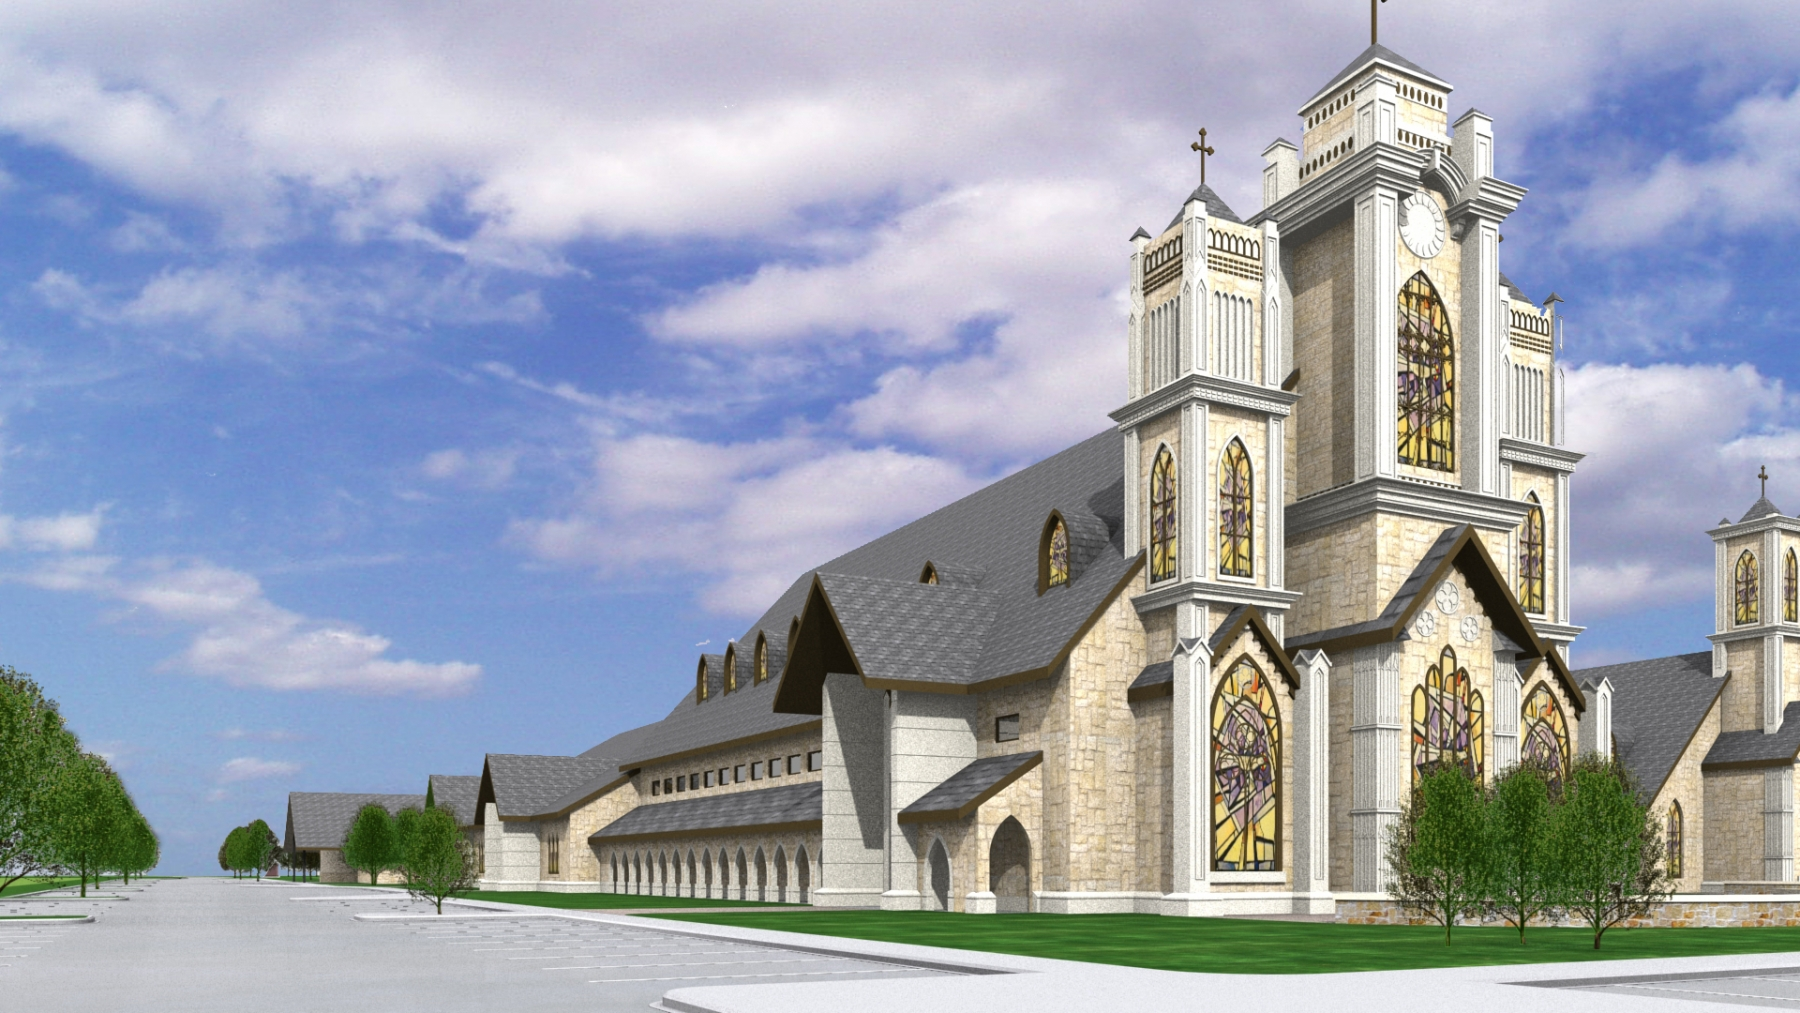 Interior church architecture designer